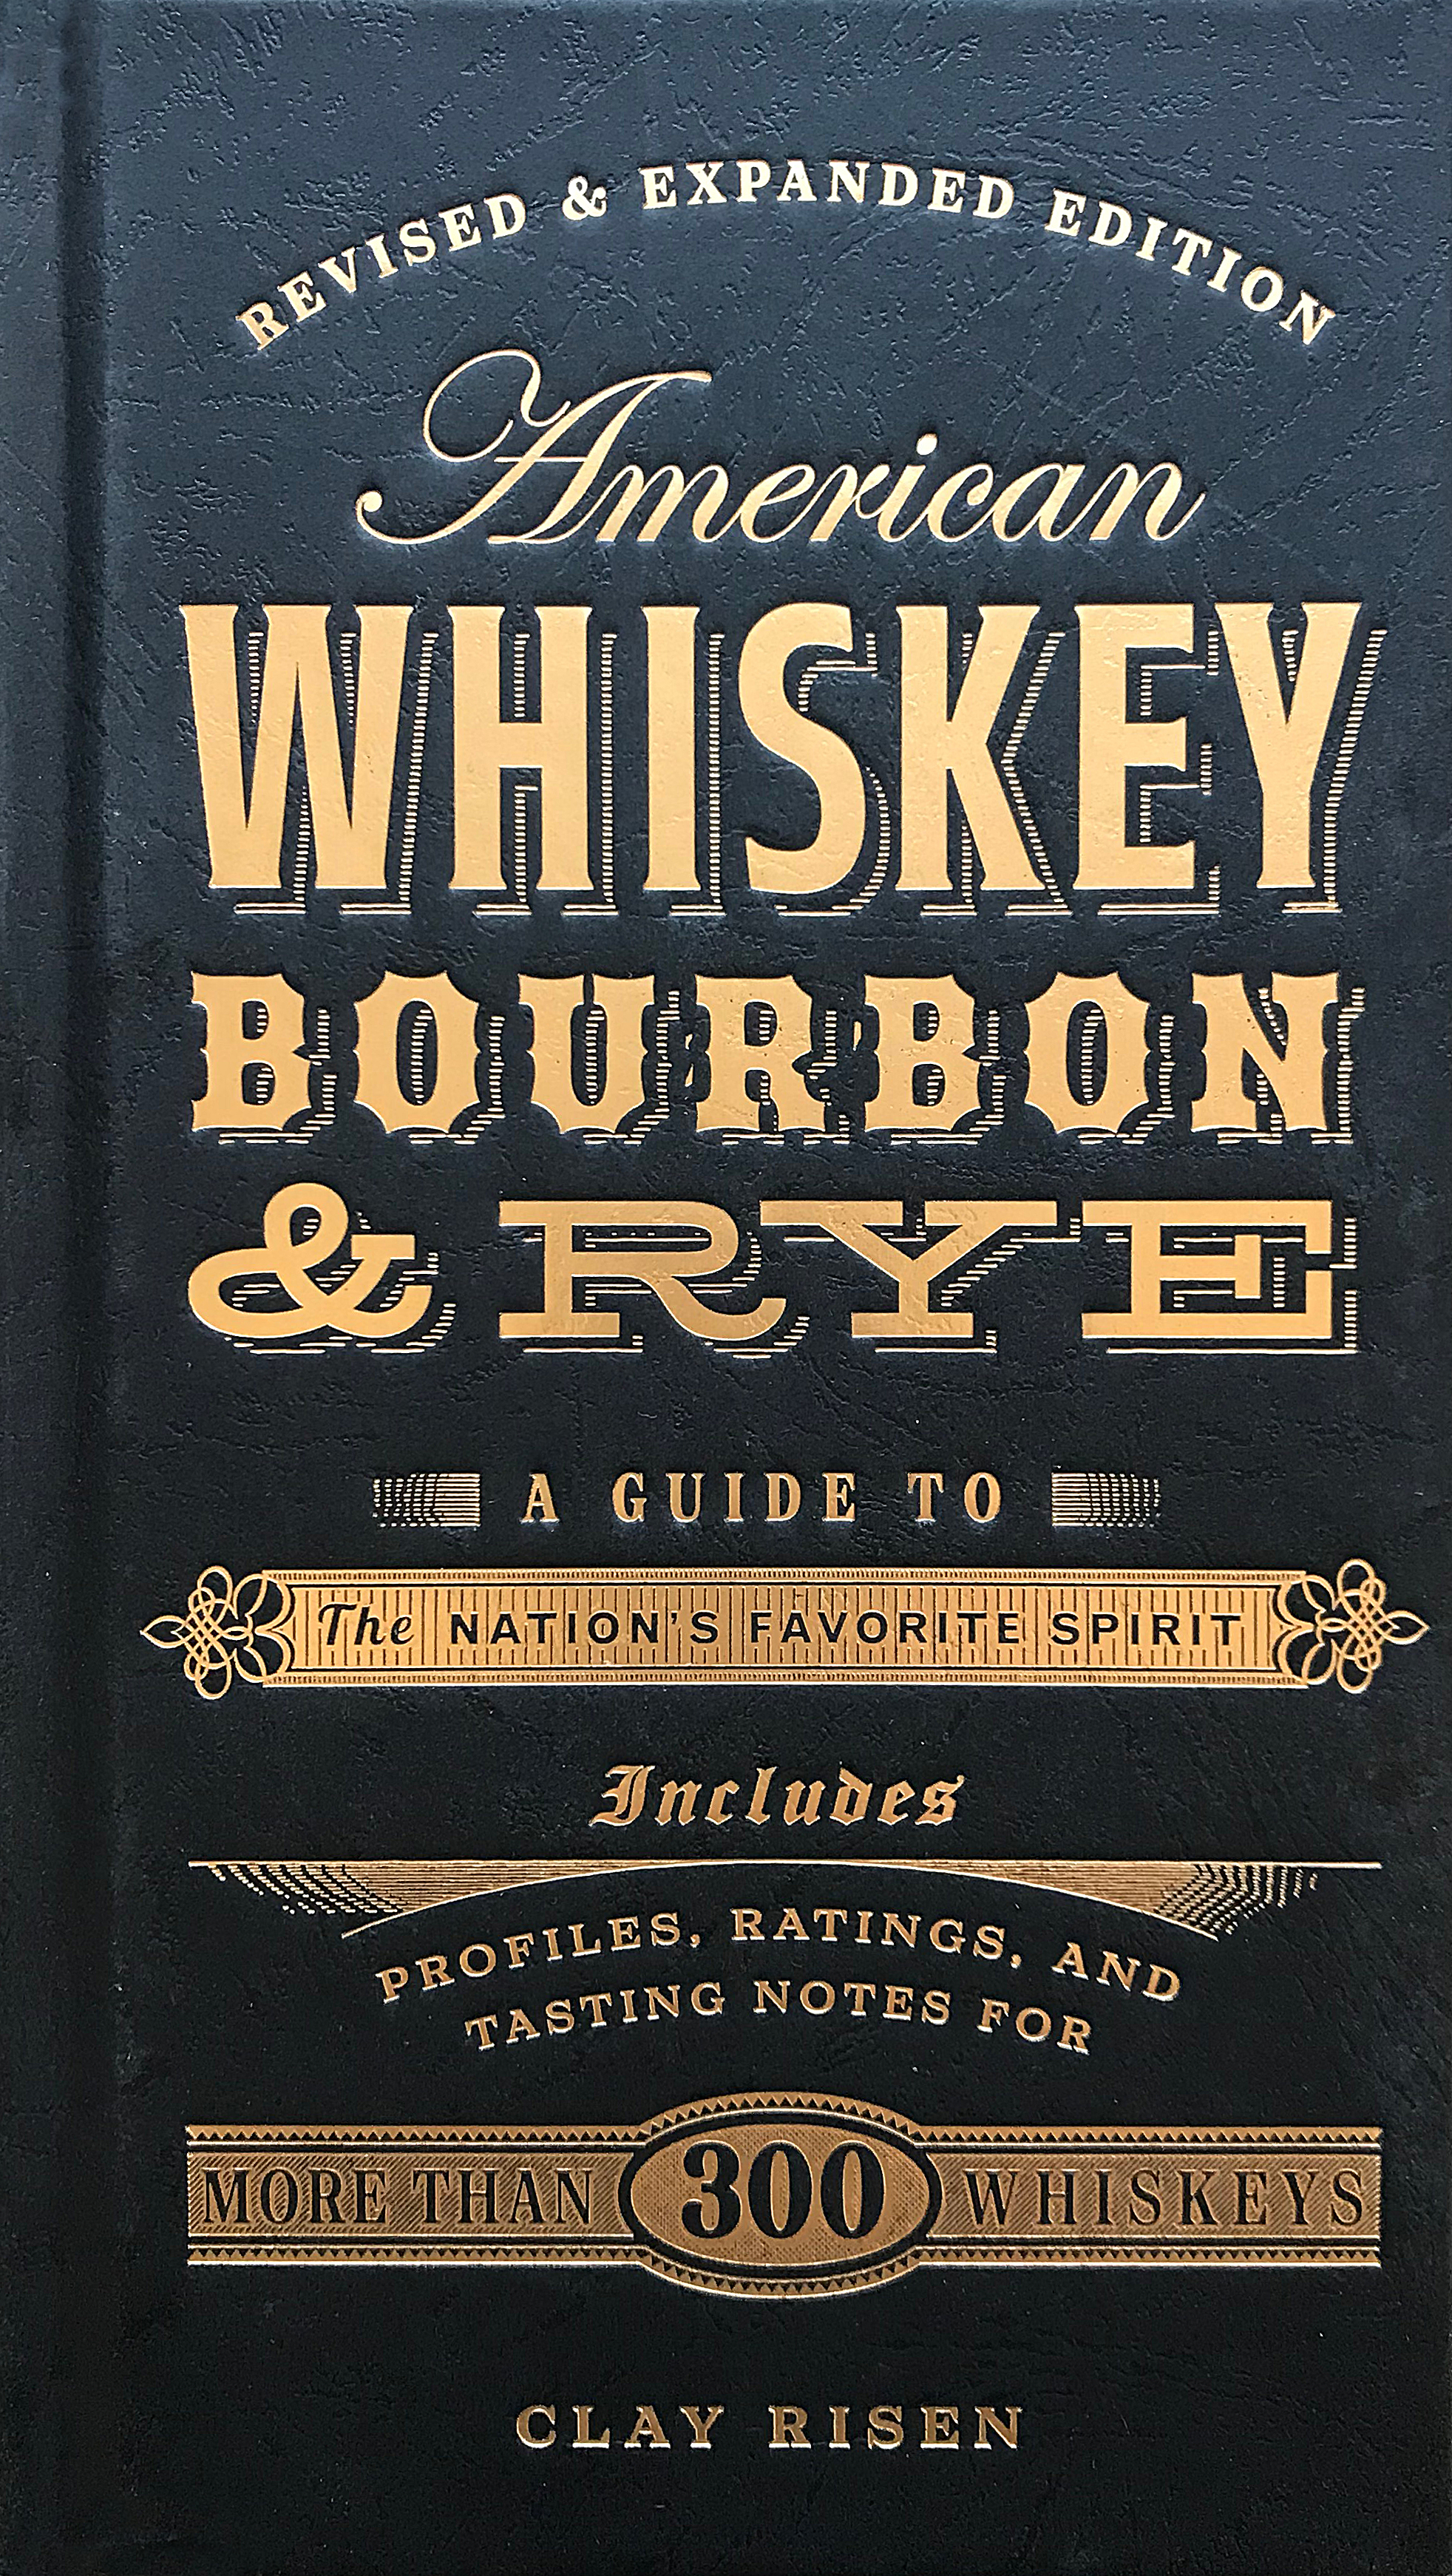 "Over 100,000 Copies Sold! - American Whisky, Bourbon & Rye: A Guide to the Nation's Favorite SpiritPublisher: A Scott & Nix Edition/Sterling EpicurePrice: $24.95""A comprehensive and opinionated guide for the intermediate tippler…It's a detailed, admirably cranky directory. Risen's tasting notes for each are eruditeand fun.""—Wall Street JournalAmazonIndieboundBarnes and Noble"